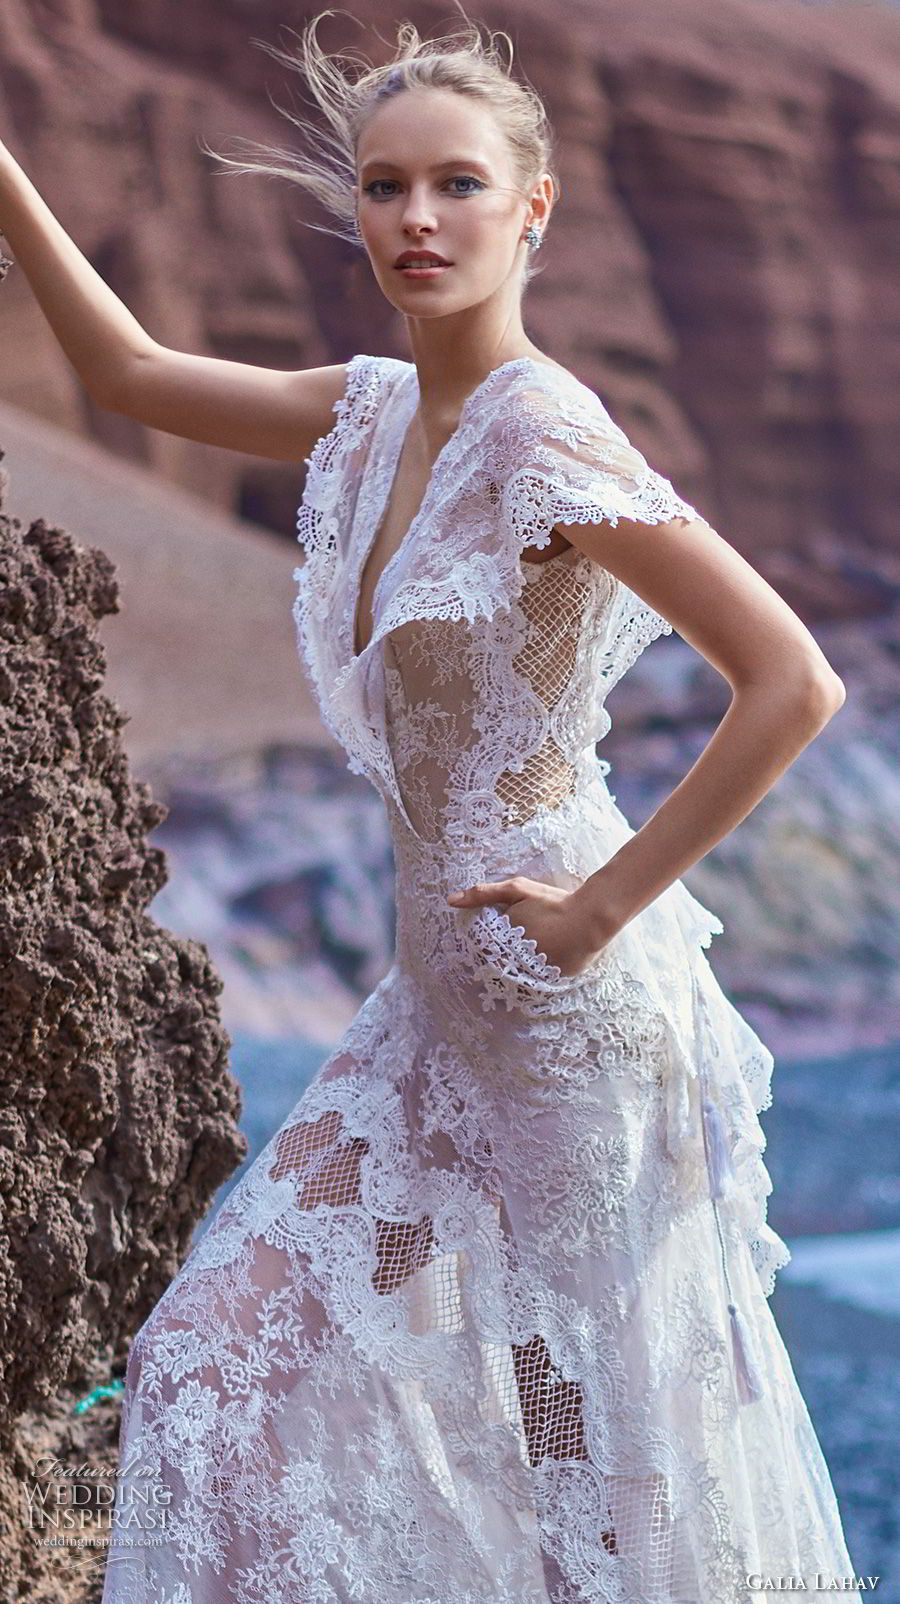 galia lahav gala 2018 bridal butterfly sleeves deep v neck full embellishment bohemian lace a line wedding dress with pockets open back short train (8) zv